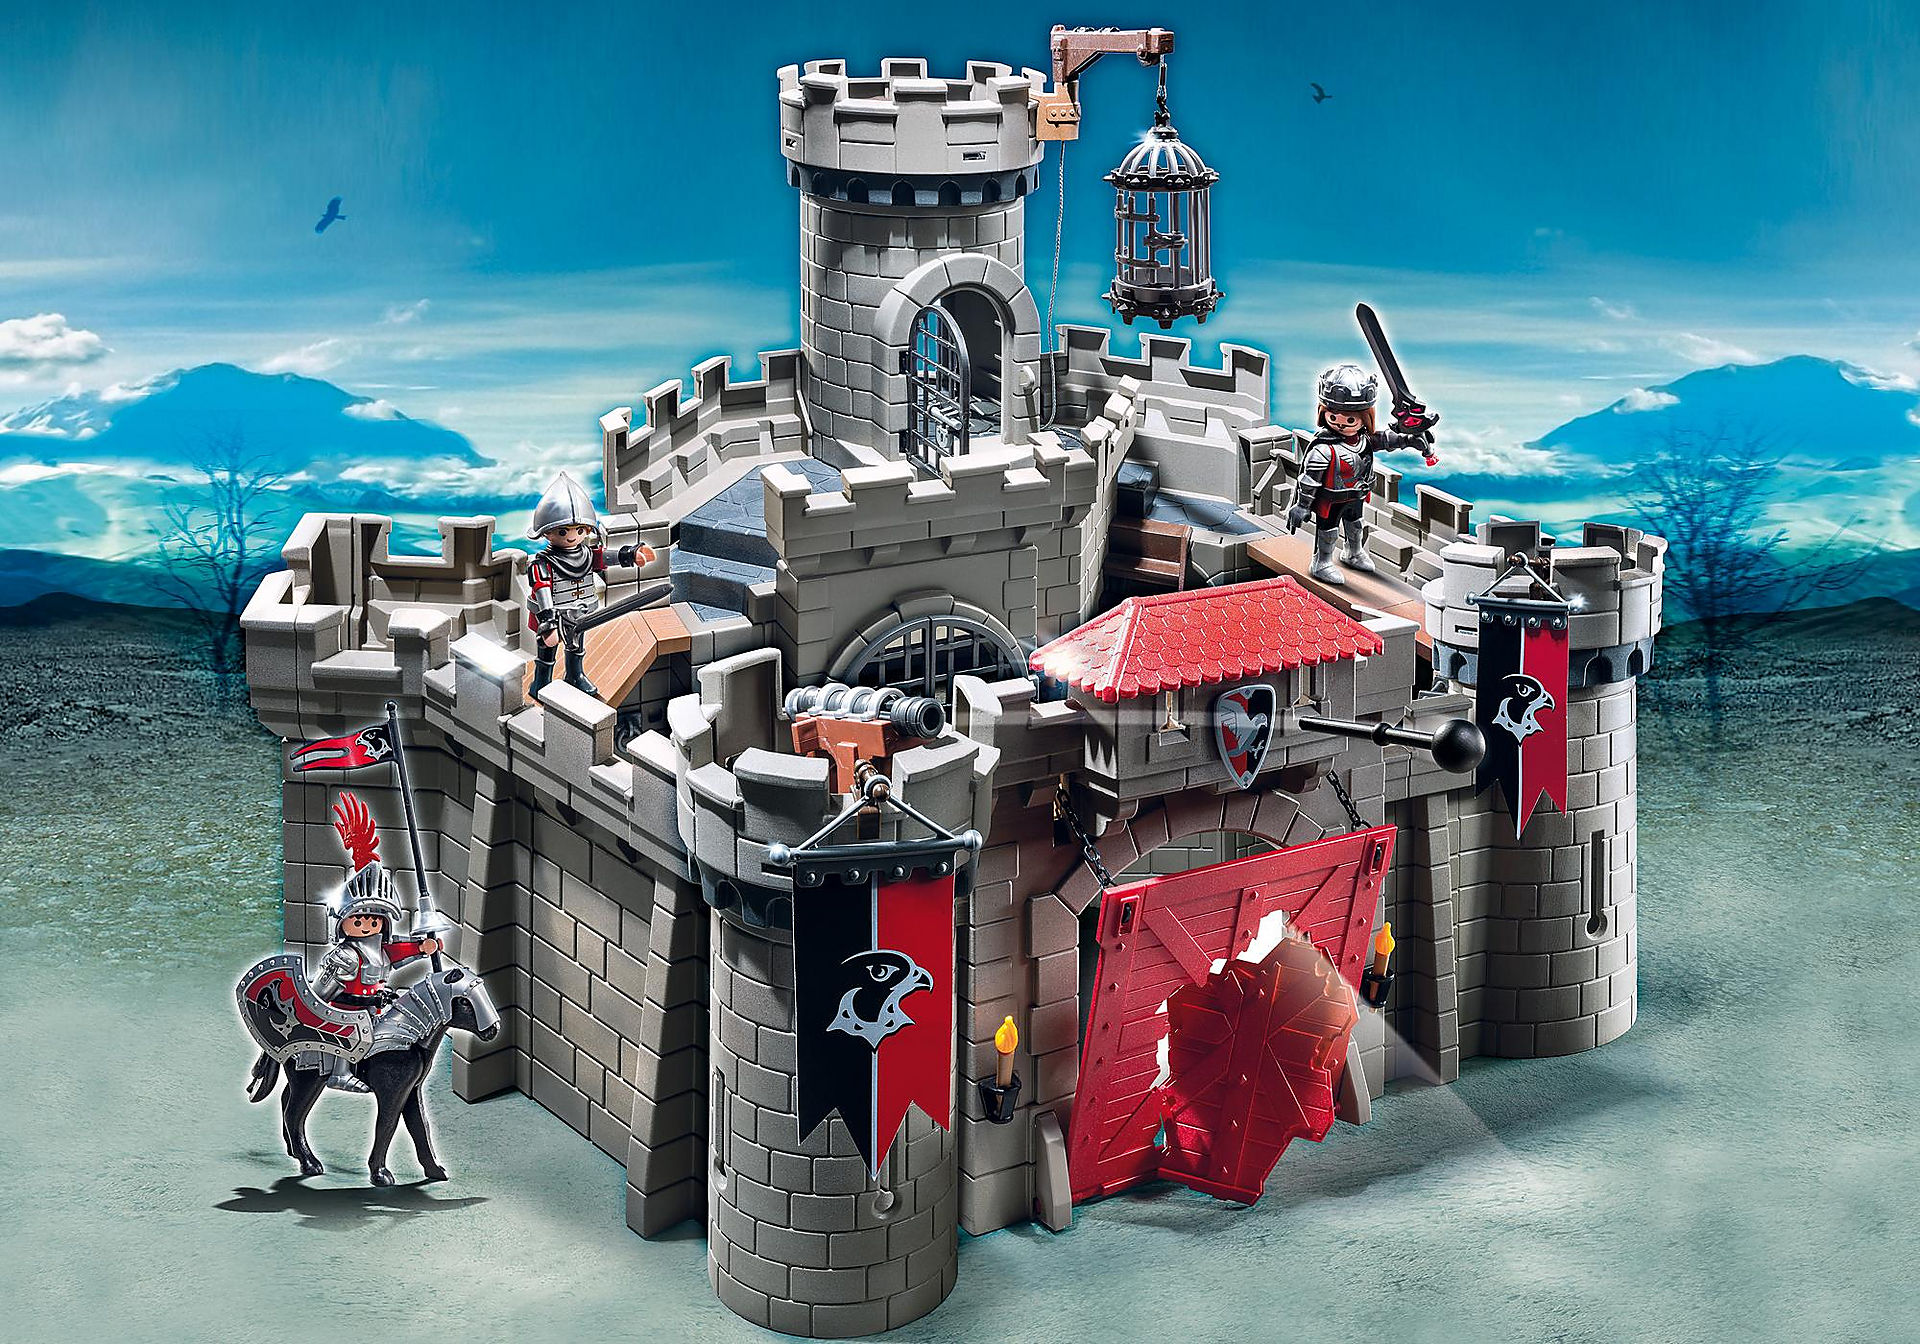 http://media.playmobil.com/i/playmobil/6001_product_detail/Falkenritterburg